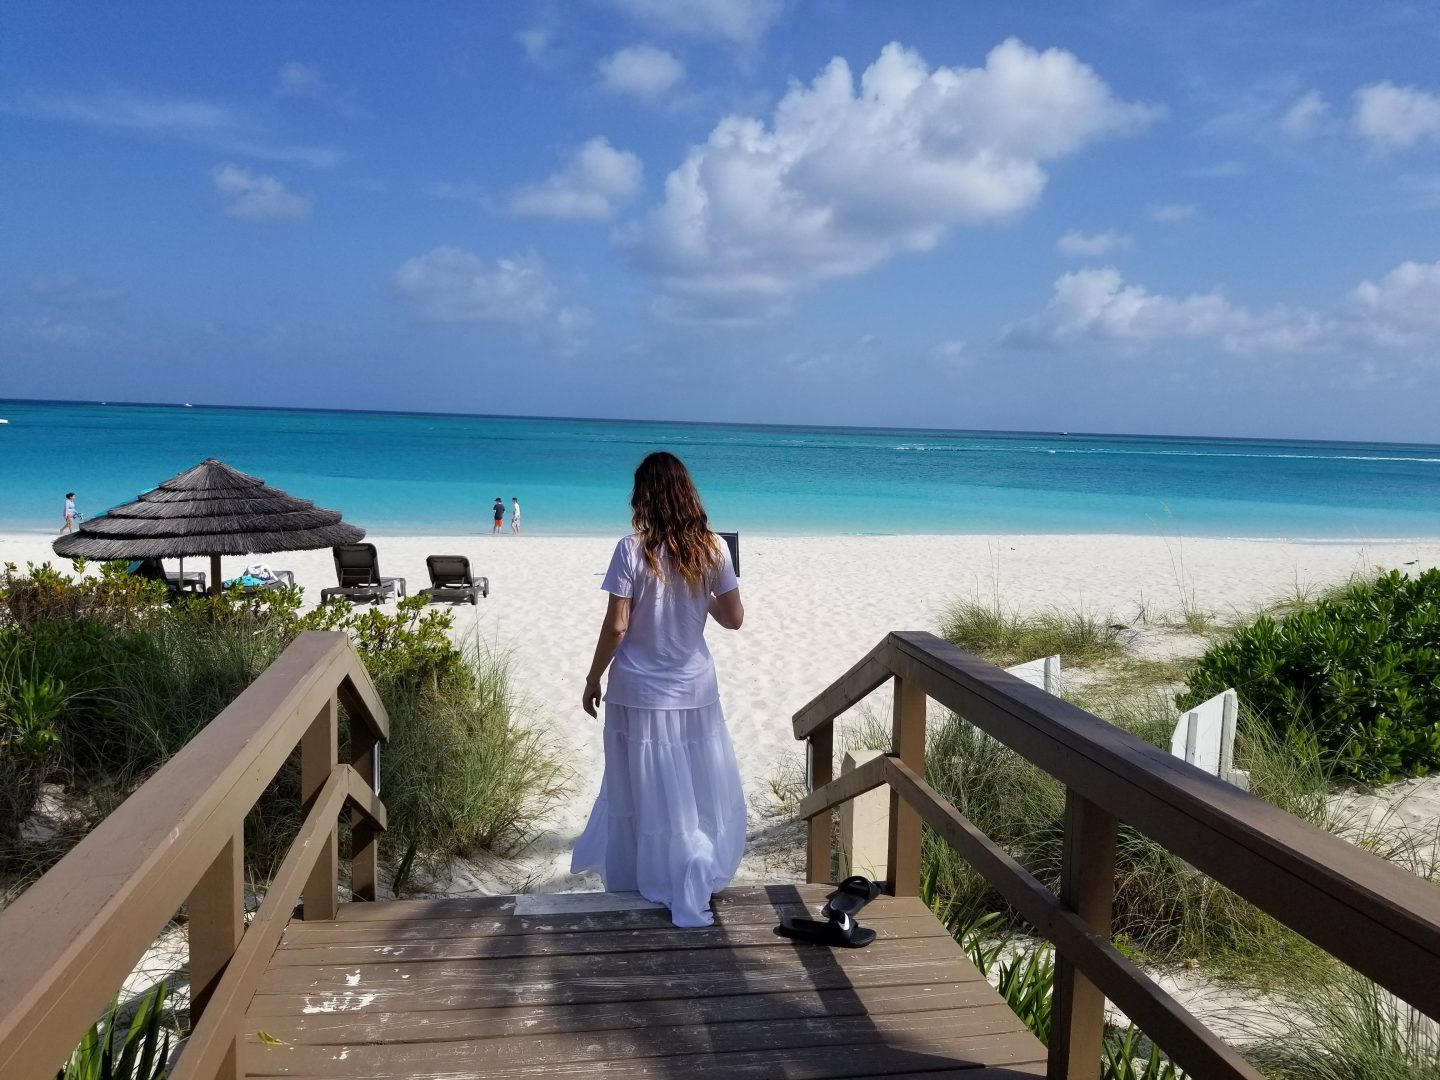 Walking to Turks and Caicos Beach